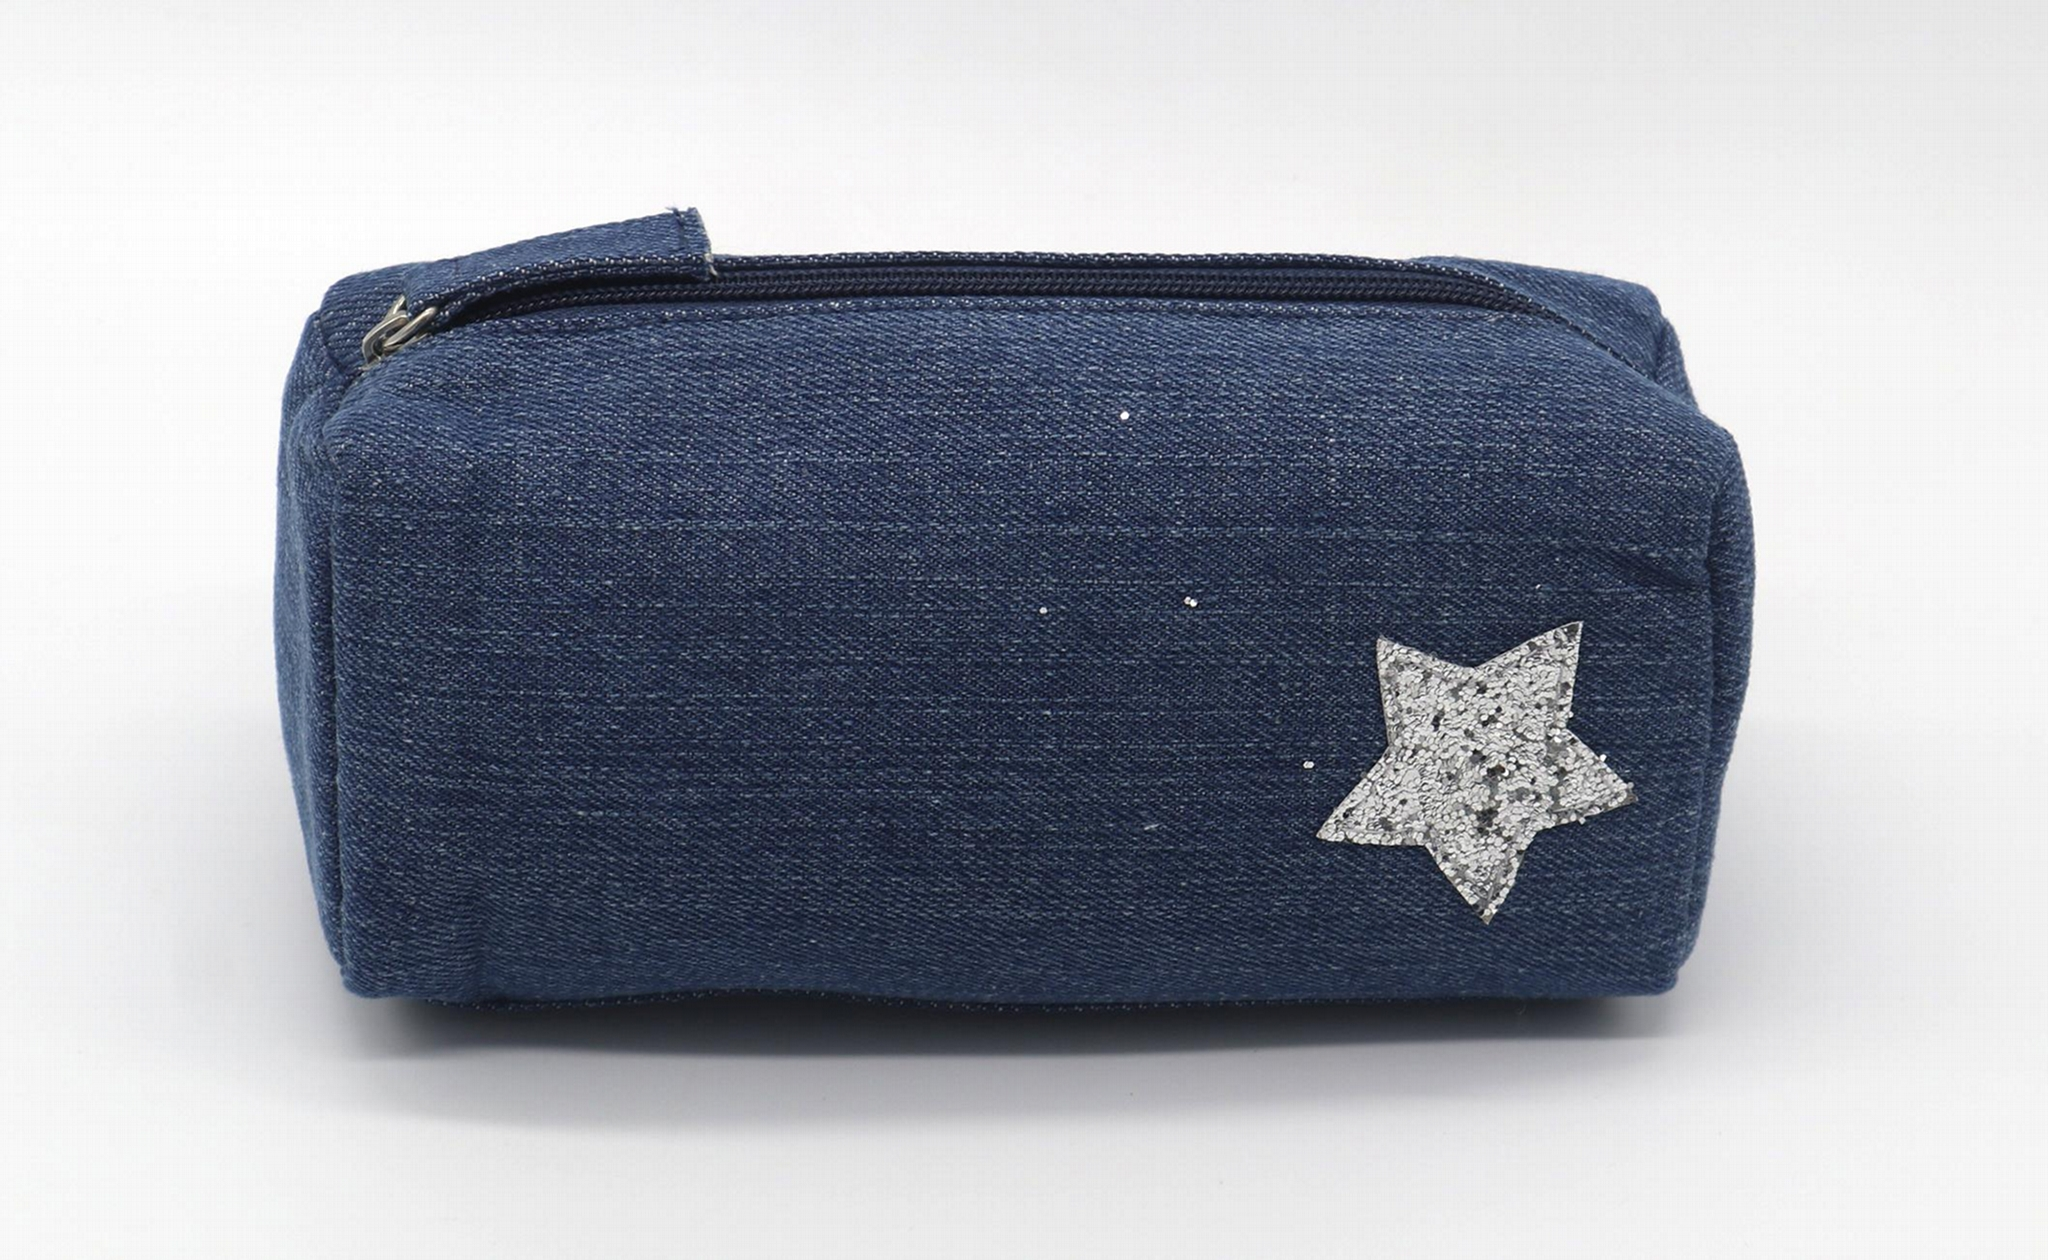 Jean made children pencil pouch with glitter star stitches on front 1